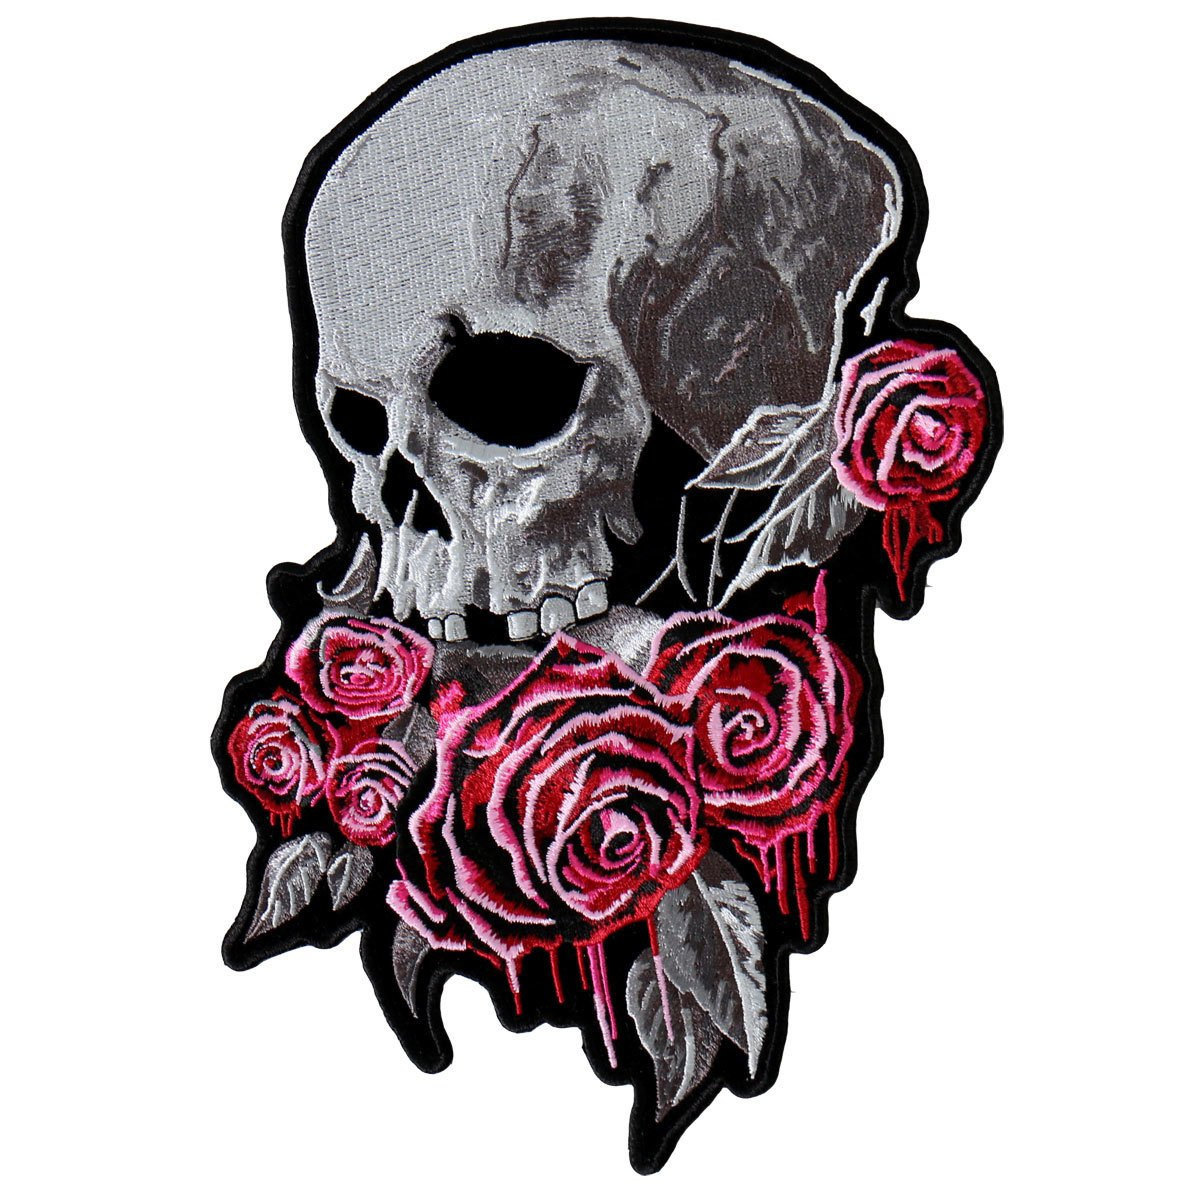 Bleeding Rose Skull Vest Patch - SKU PPA8310-HI